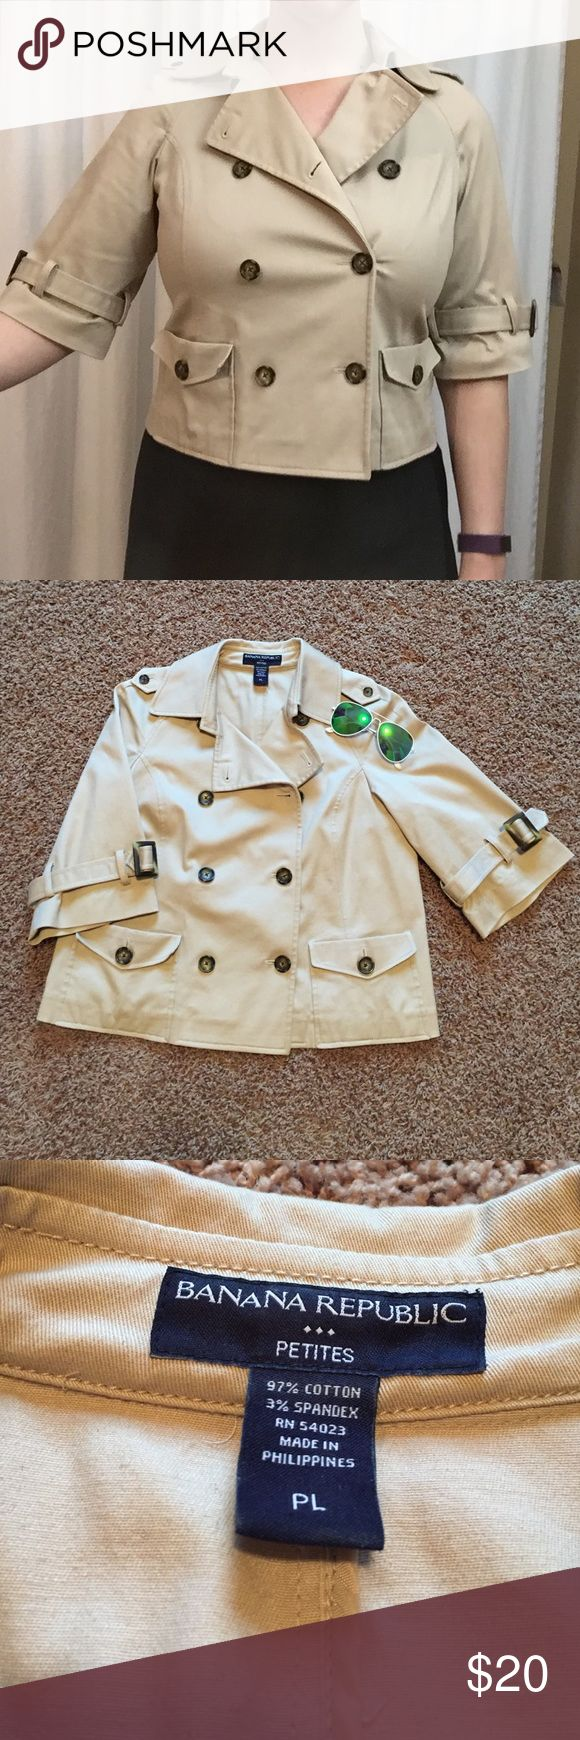 """Banana Republic safari/trench style cropped jacket So cute! Cropped safari jacket from Banana Republic complete with little buckle belted sleeves. Unlined. Jacket is 21.5"""" long. Sleeves are elbow length. Double breasted with cute tortoise shell buttons. Bust 20"""" from armpit to armpit. Nice stretch to fabric. Please note this is a petite! Banana Republic Jackets & Coats Blazers"""